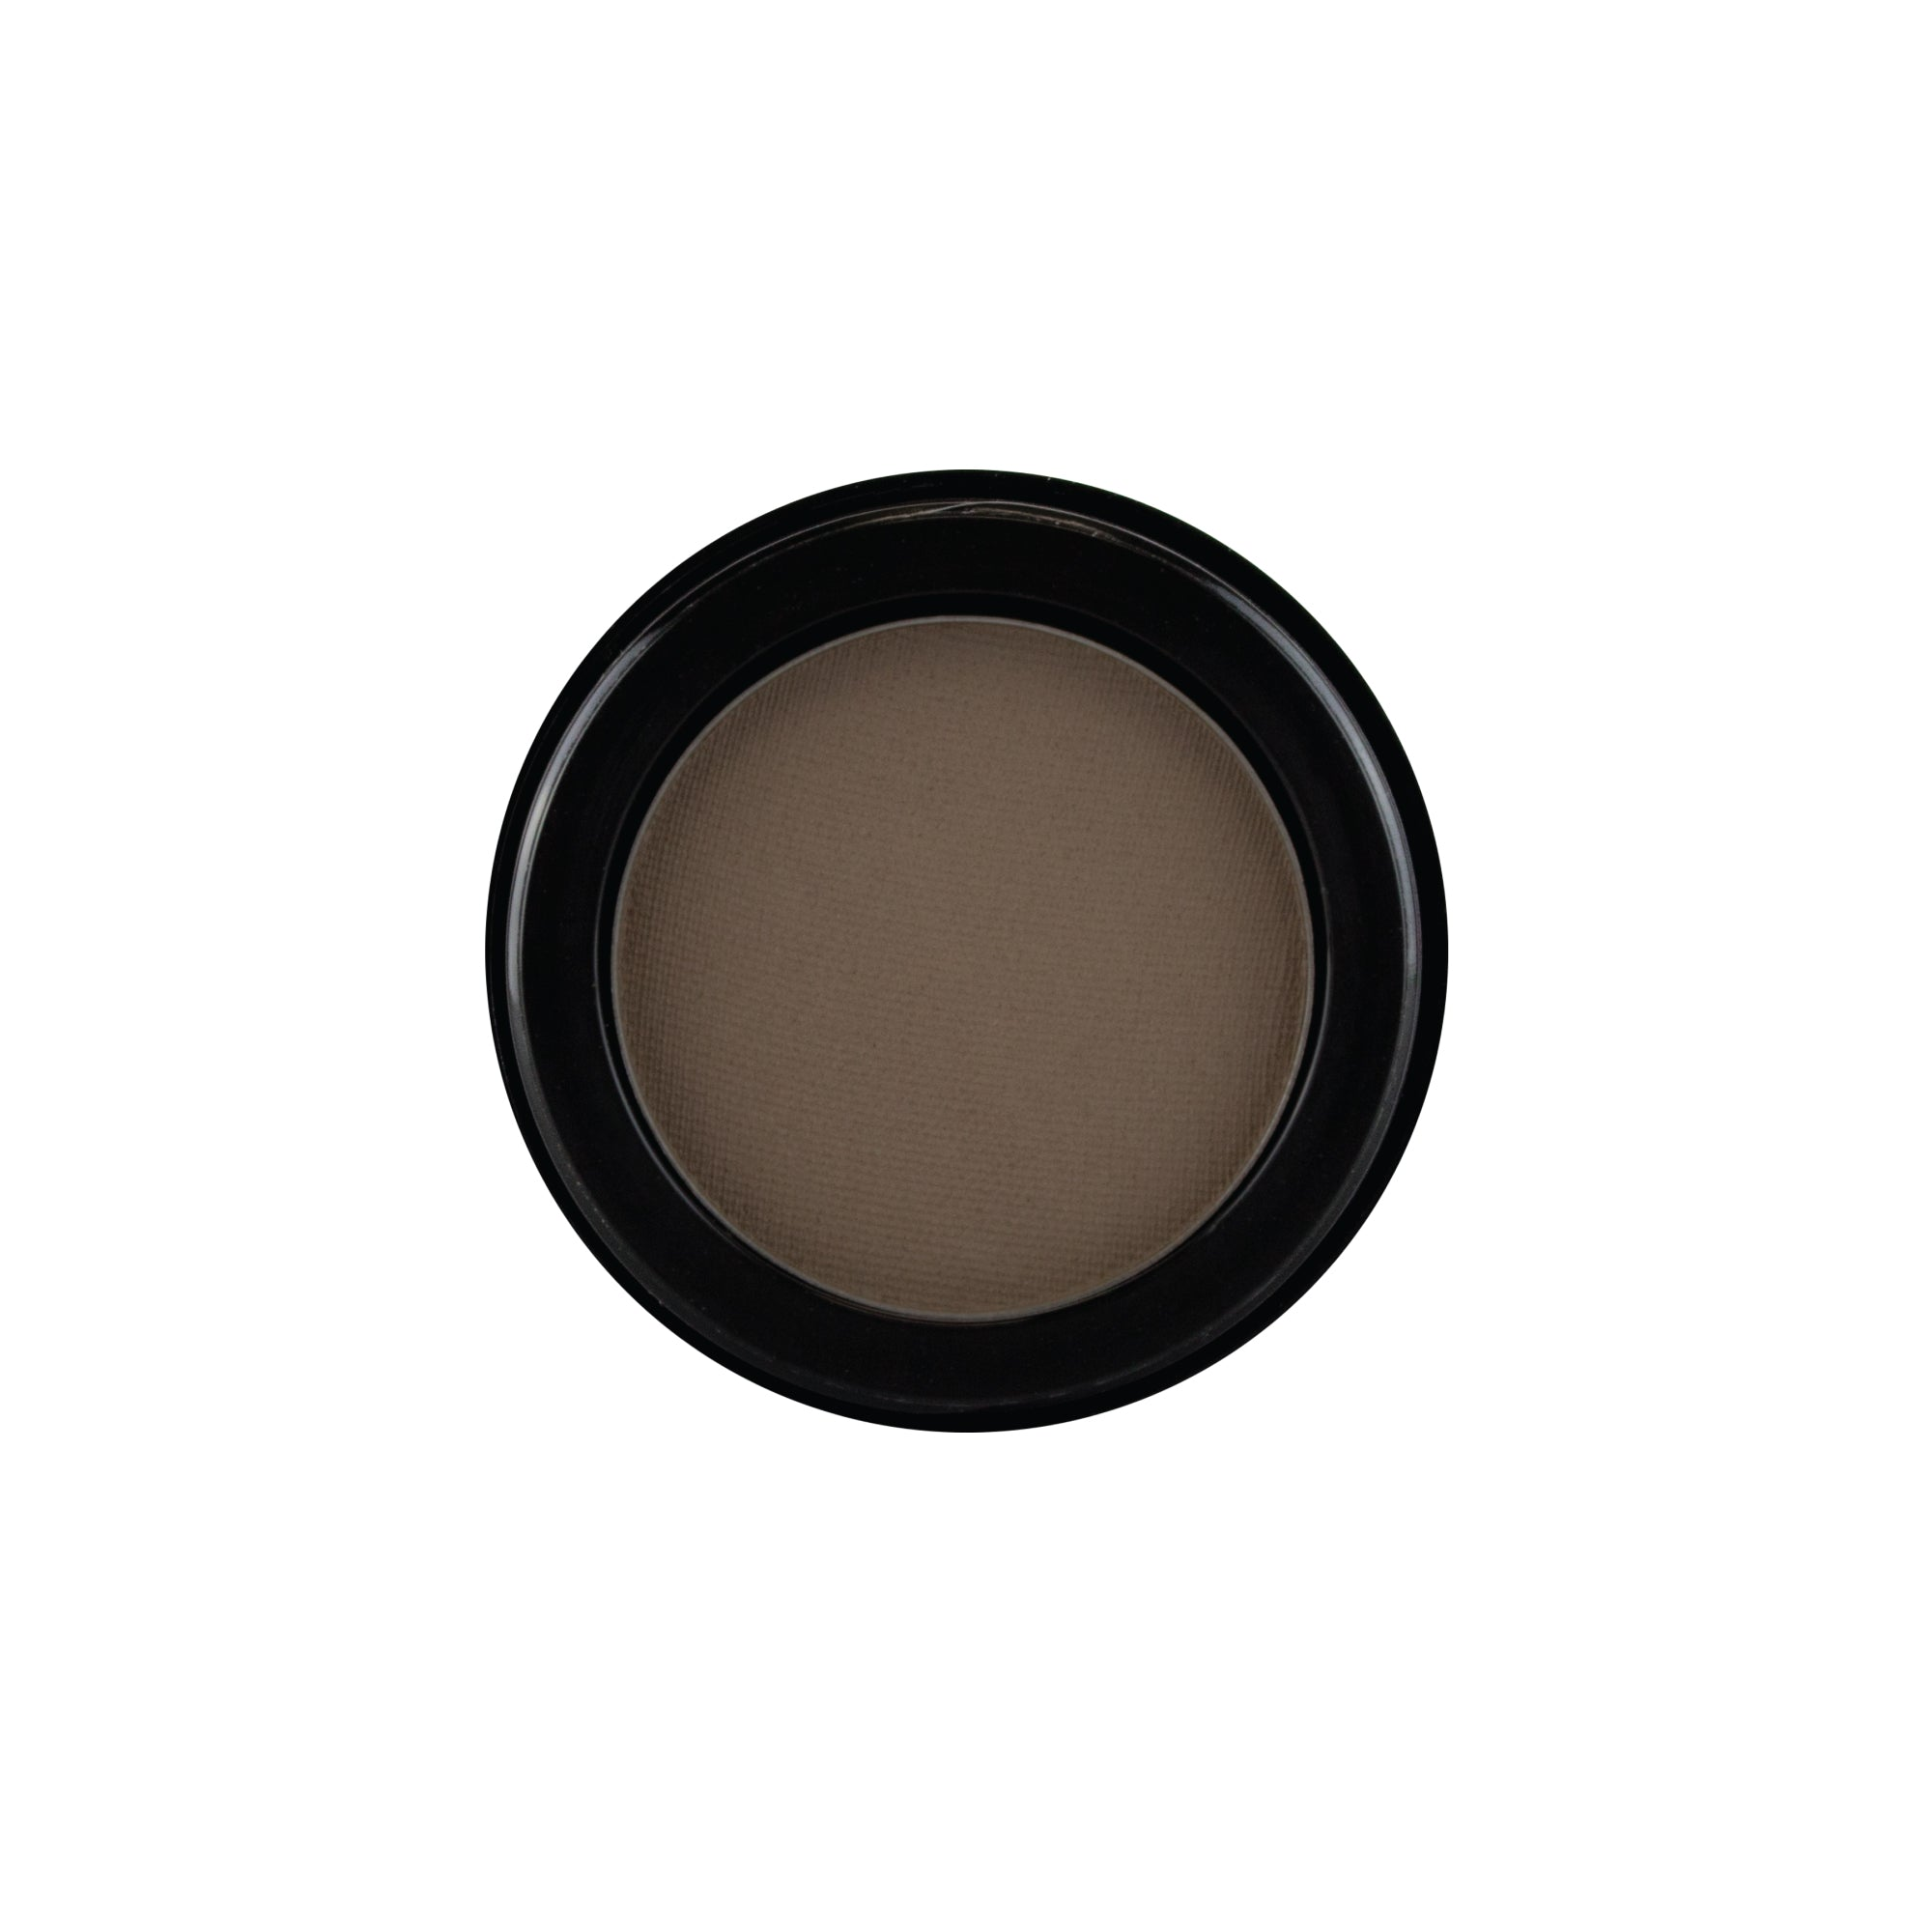 BILLION DOLLAR BROWS - Eyebrow Powder